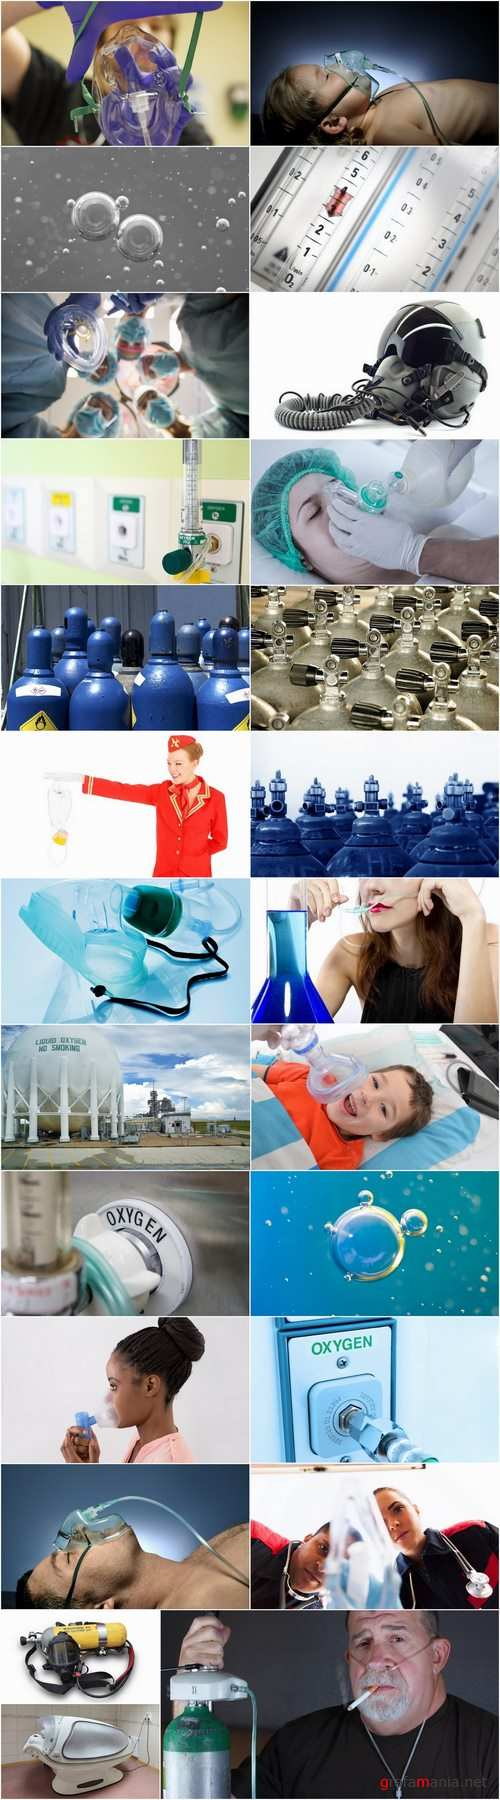 Oxygen mask help in case of poisoning 25 HQ  Jpeg